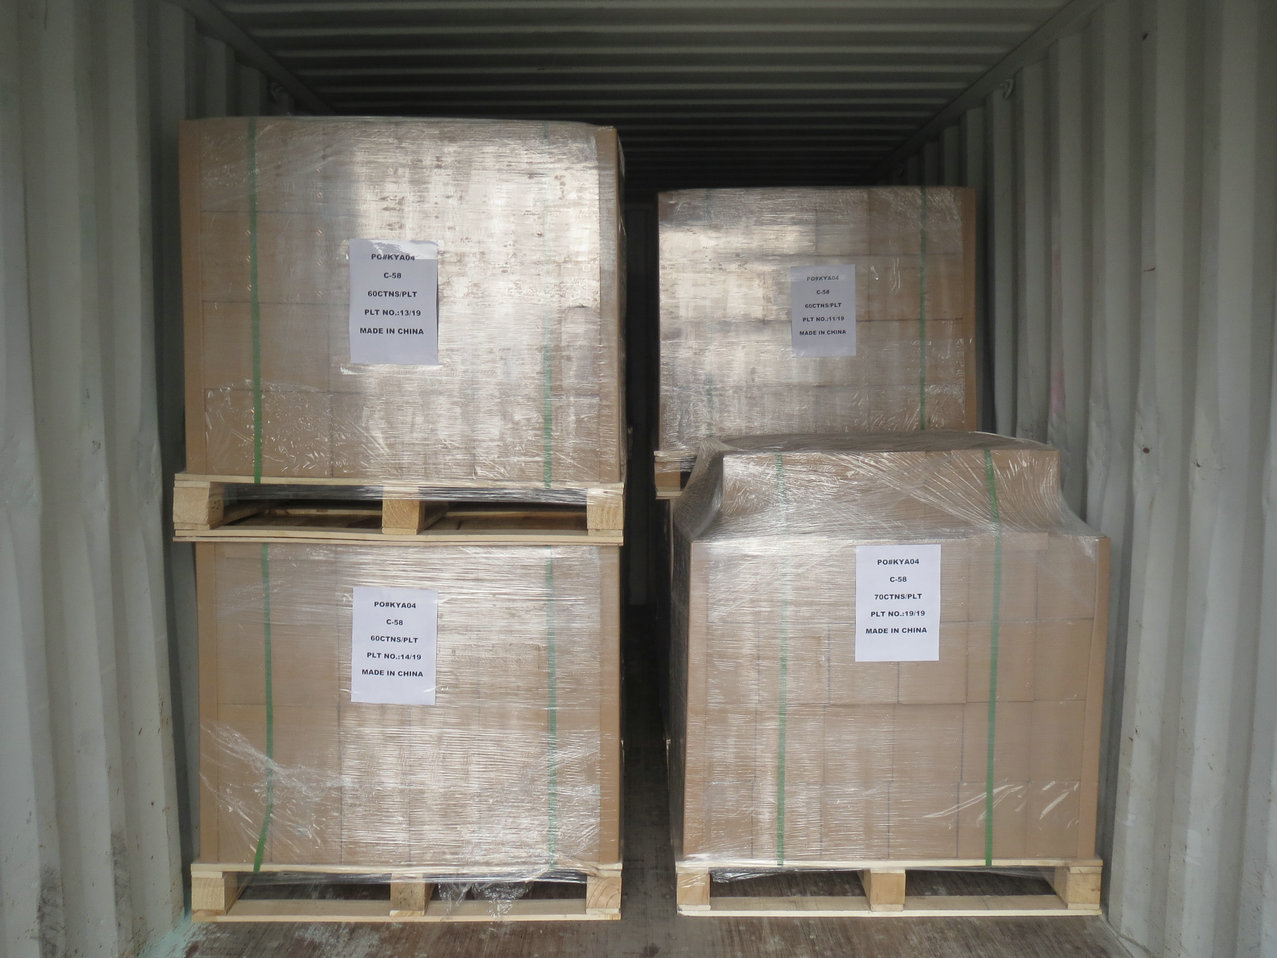 The condition of cargo loading